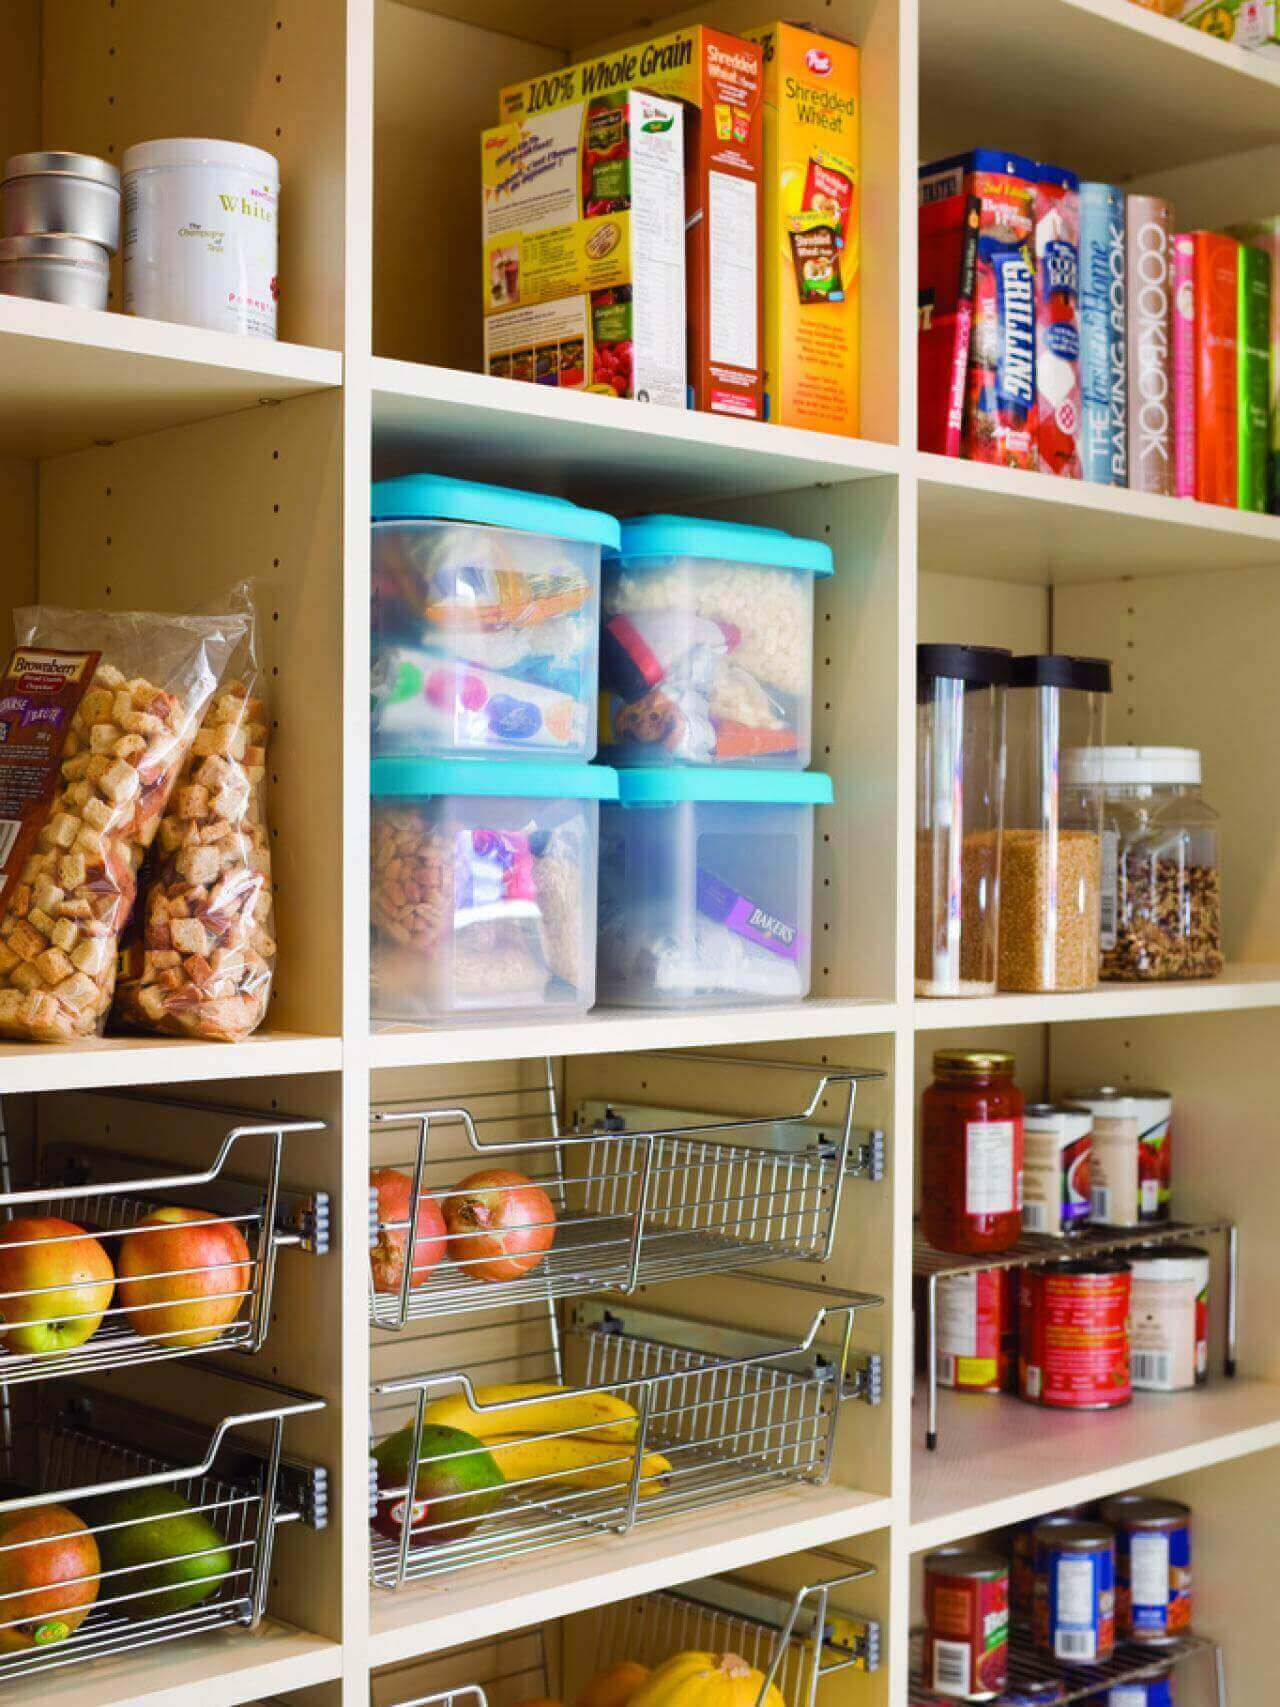 maximize storage space in your family home this winter